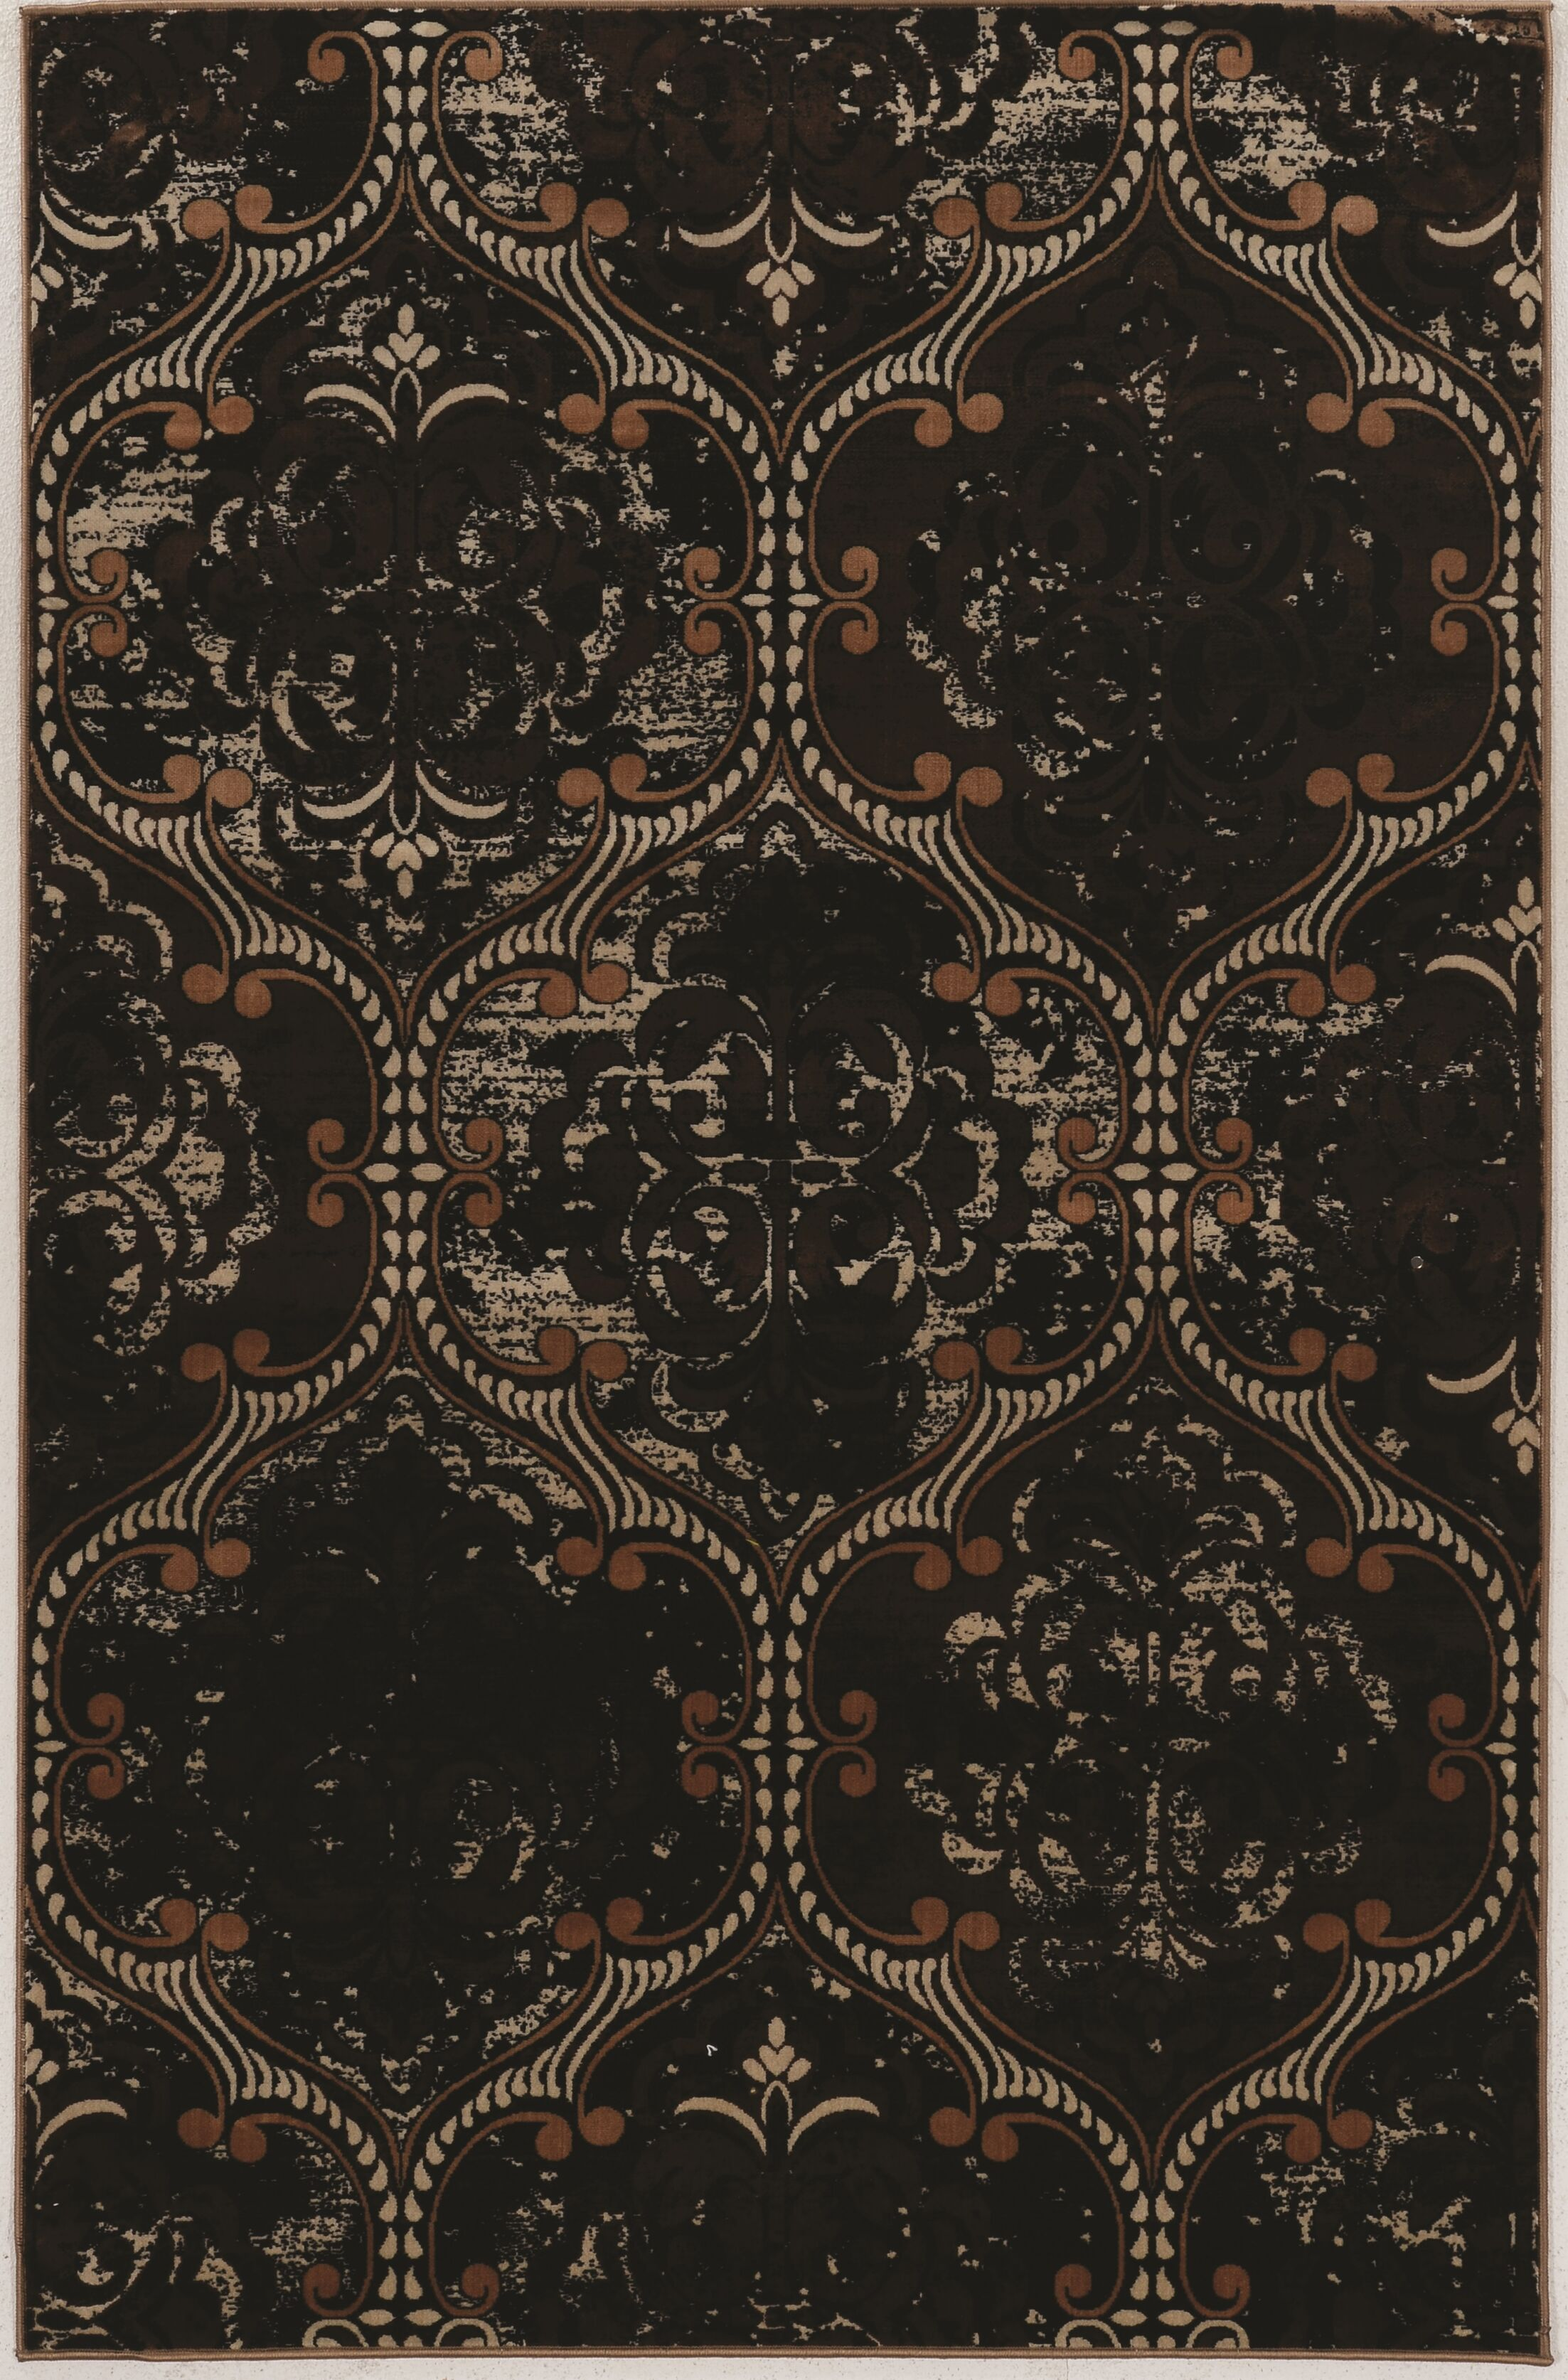 Ateao Hand-Loomed Brown Area Rug Rug Size: Rectangle 8' x 10'